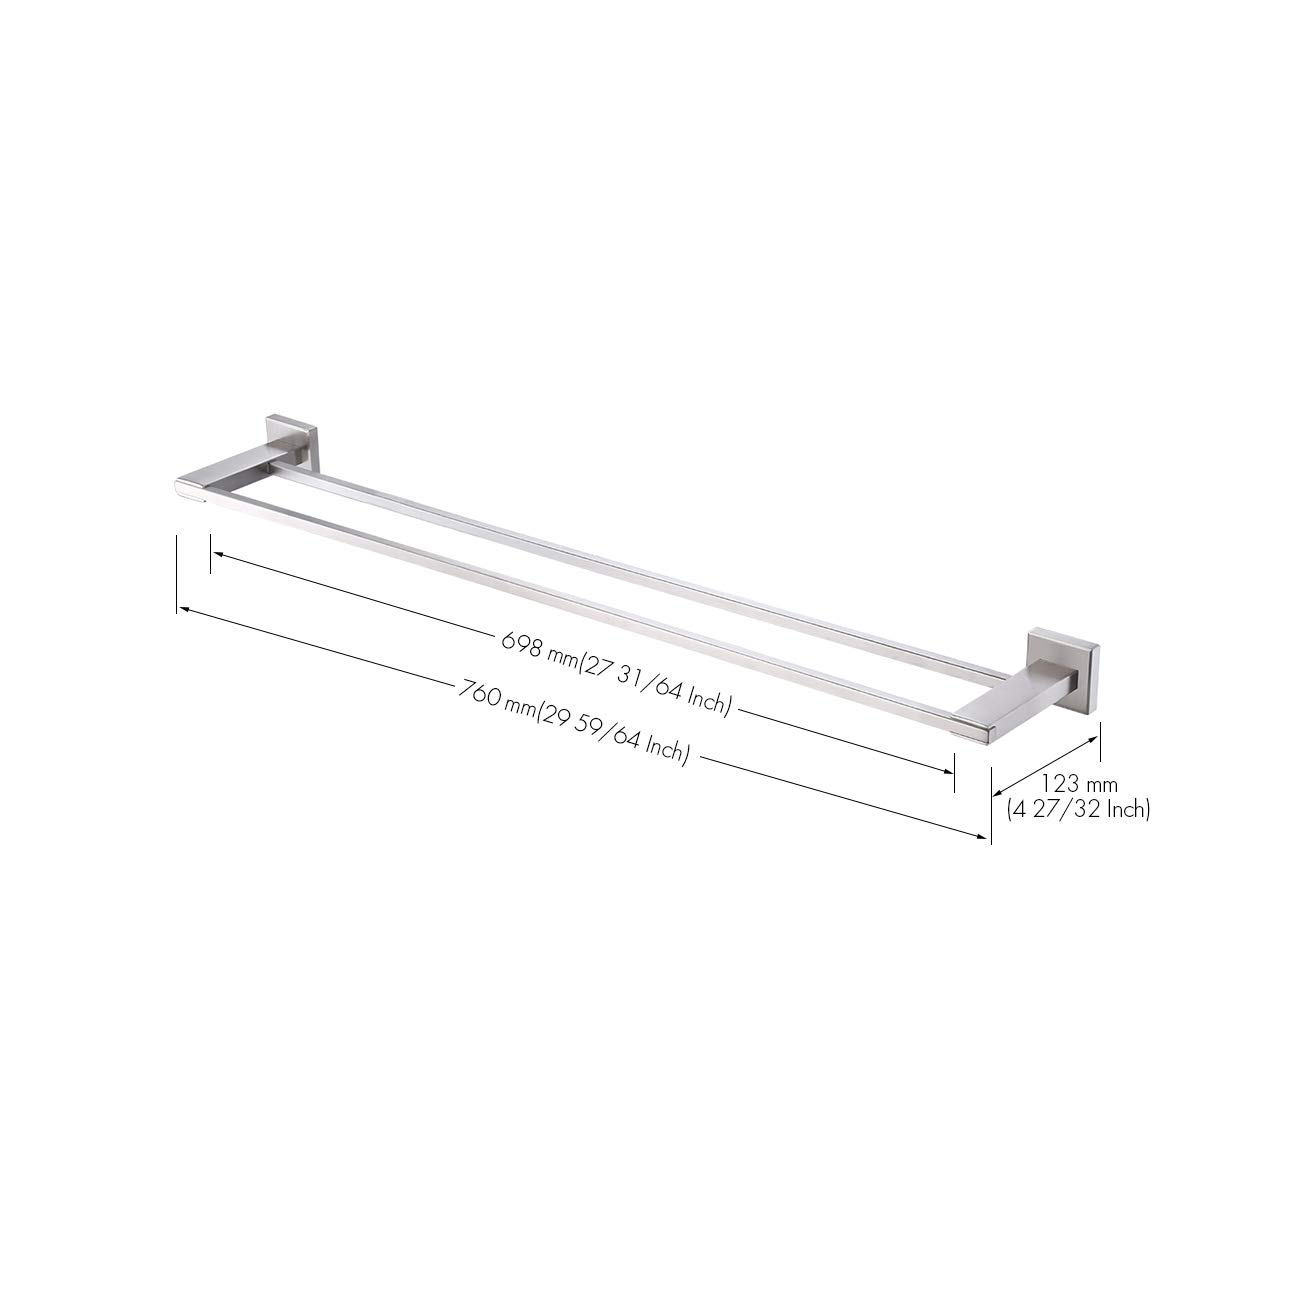 Amazon Com Kes 30 Inch Double Towel Bar Sus 304 Stainless Steel Bathroom Rectangular Towel Rack 30 Inch Bath Towel Holder Rustproof Wall Mount Brushed Finish A2401s75 2 Kitchen Dining